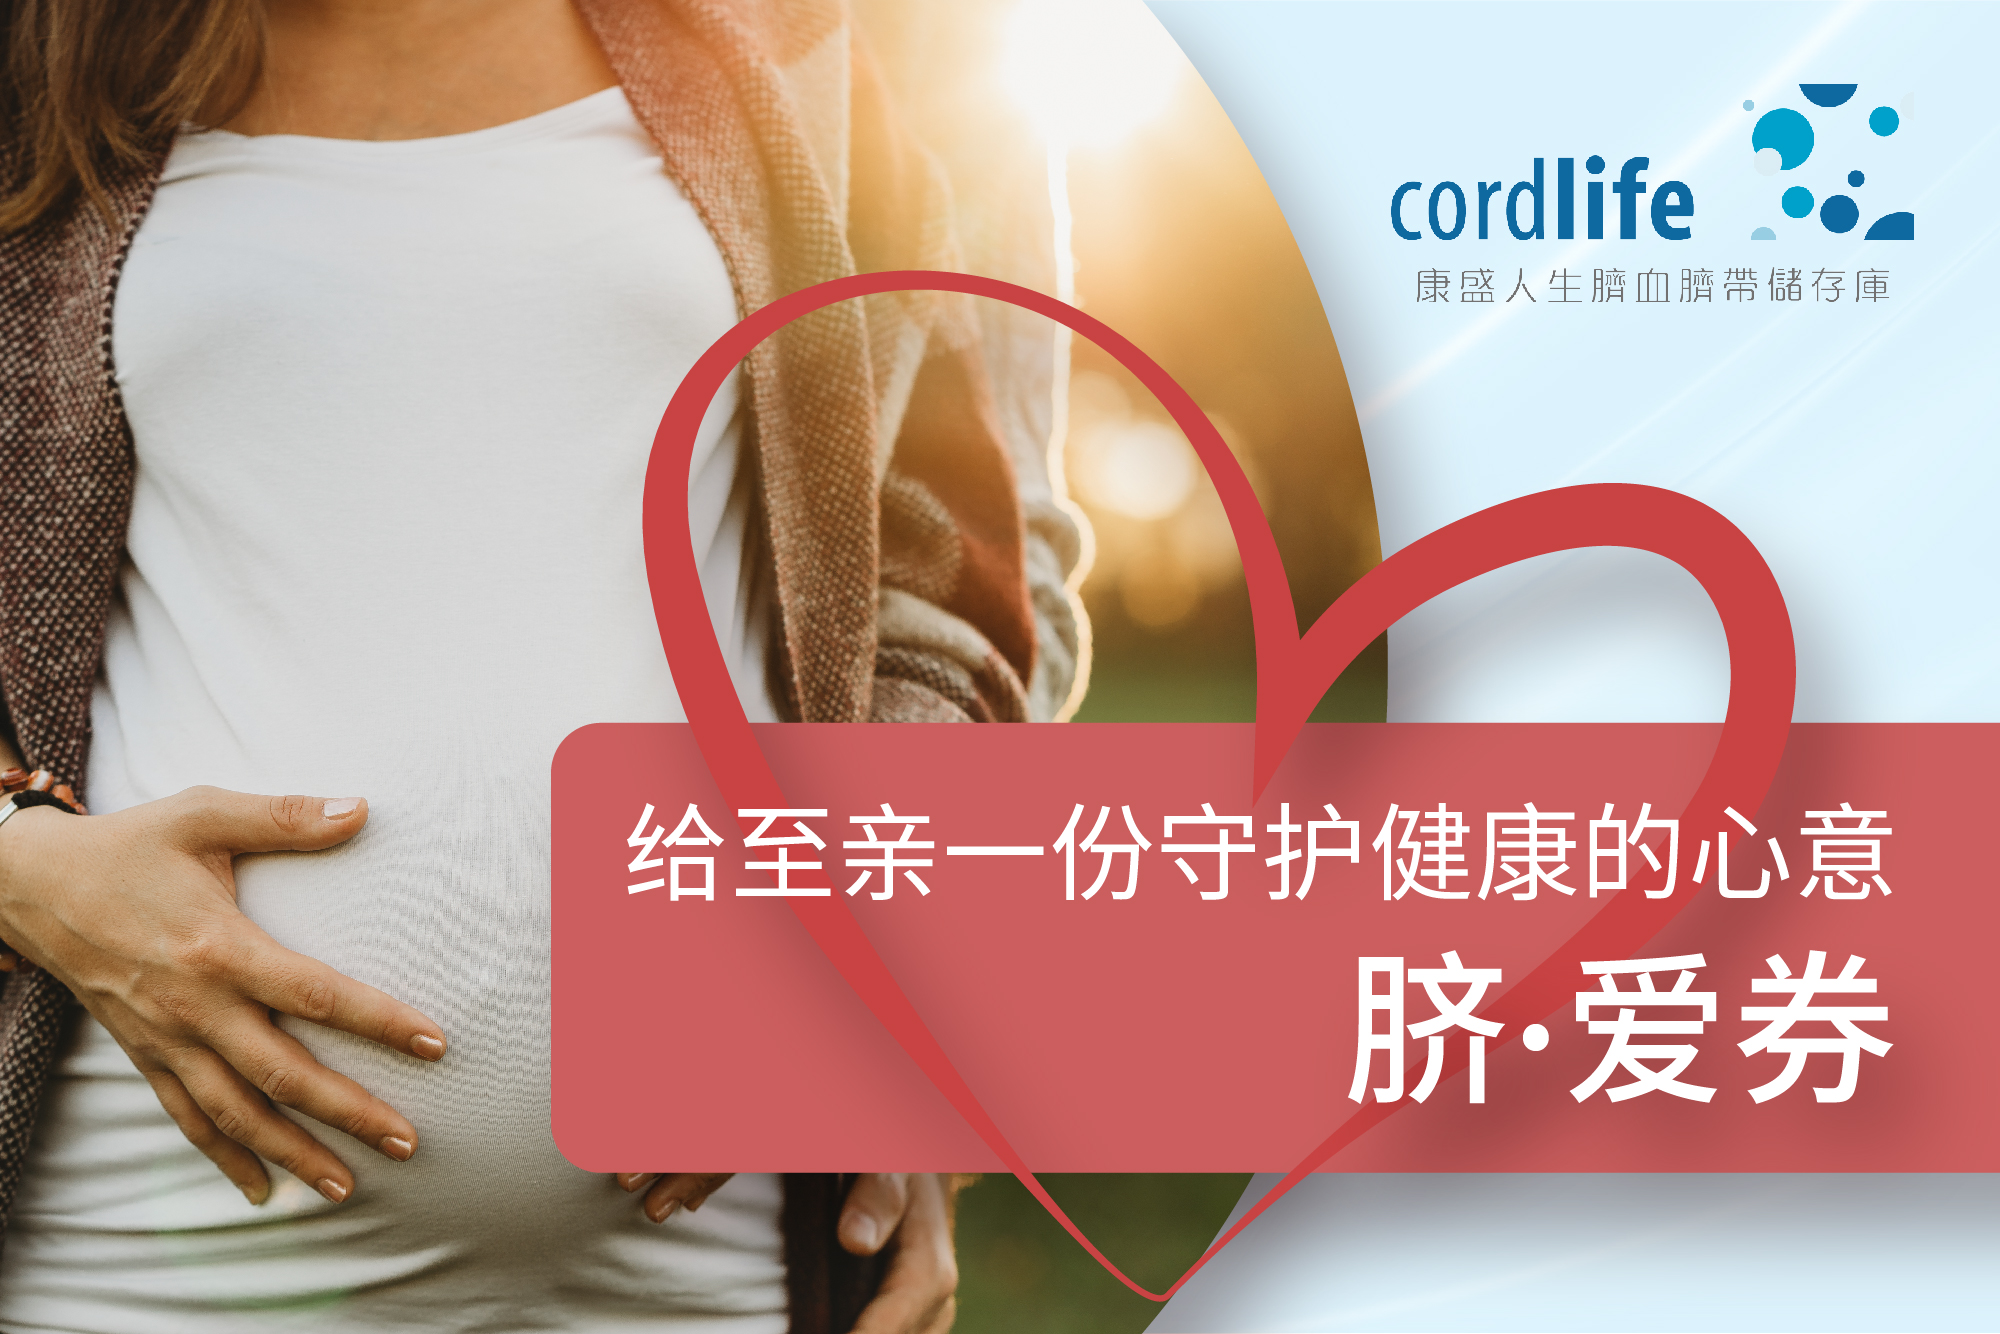 Purchase Cordlife Gift Certificate